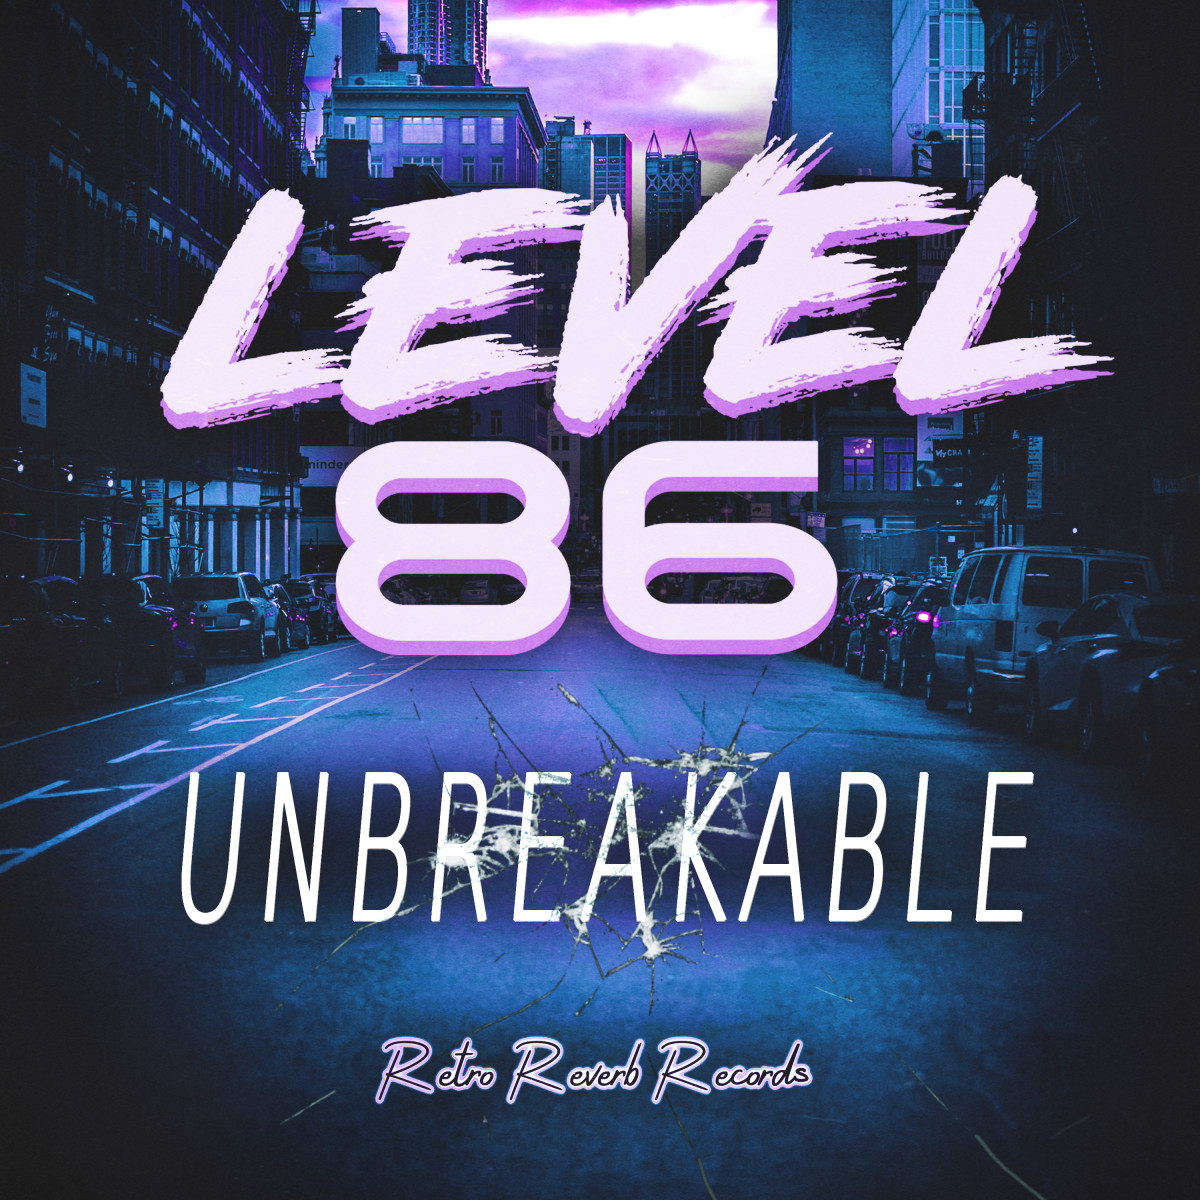 """Synth EP Review: """"Unbreakable"""" by Level 86 (feat. The Mercury Sisters)"""